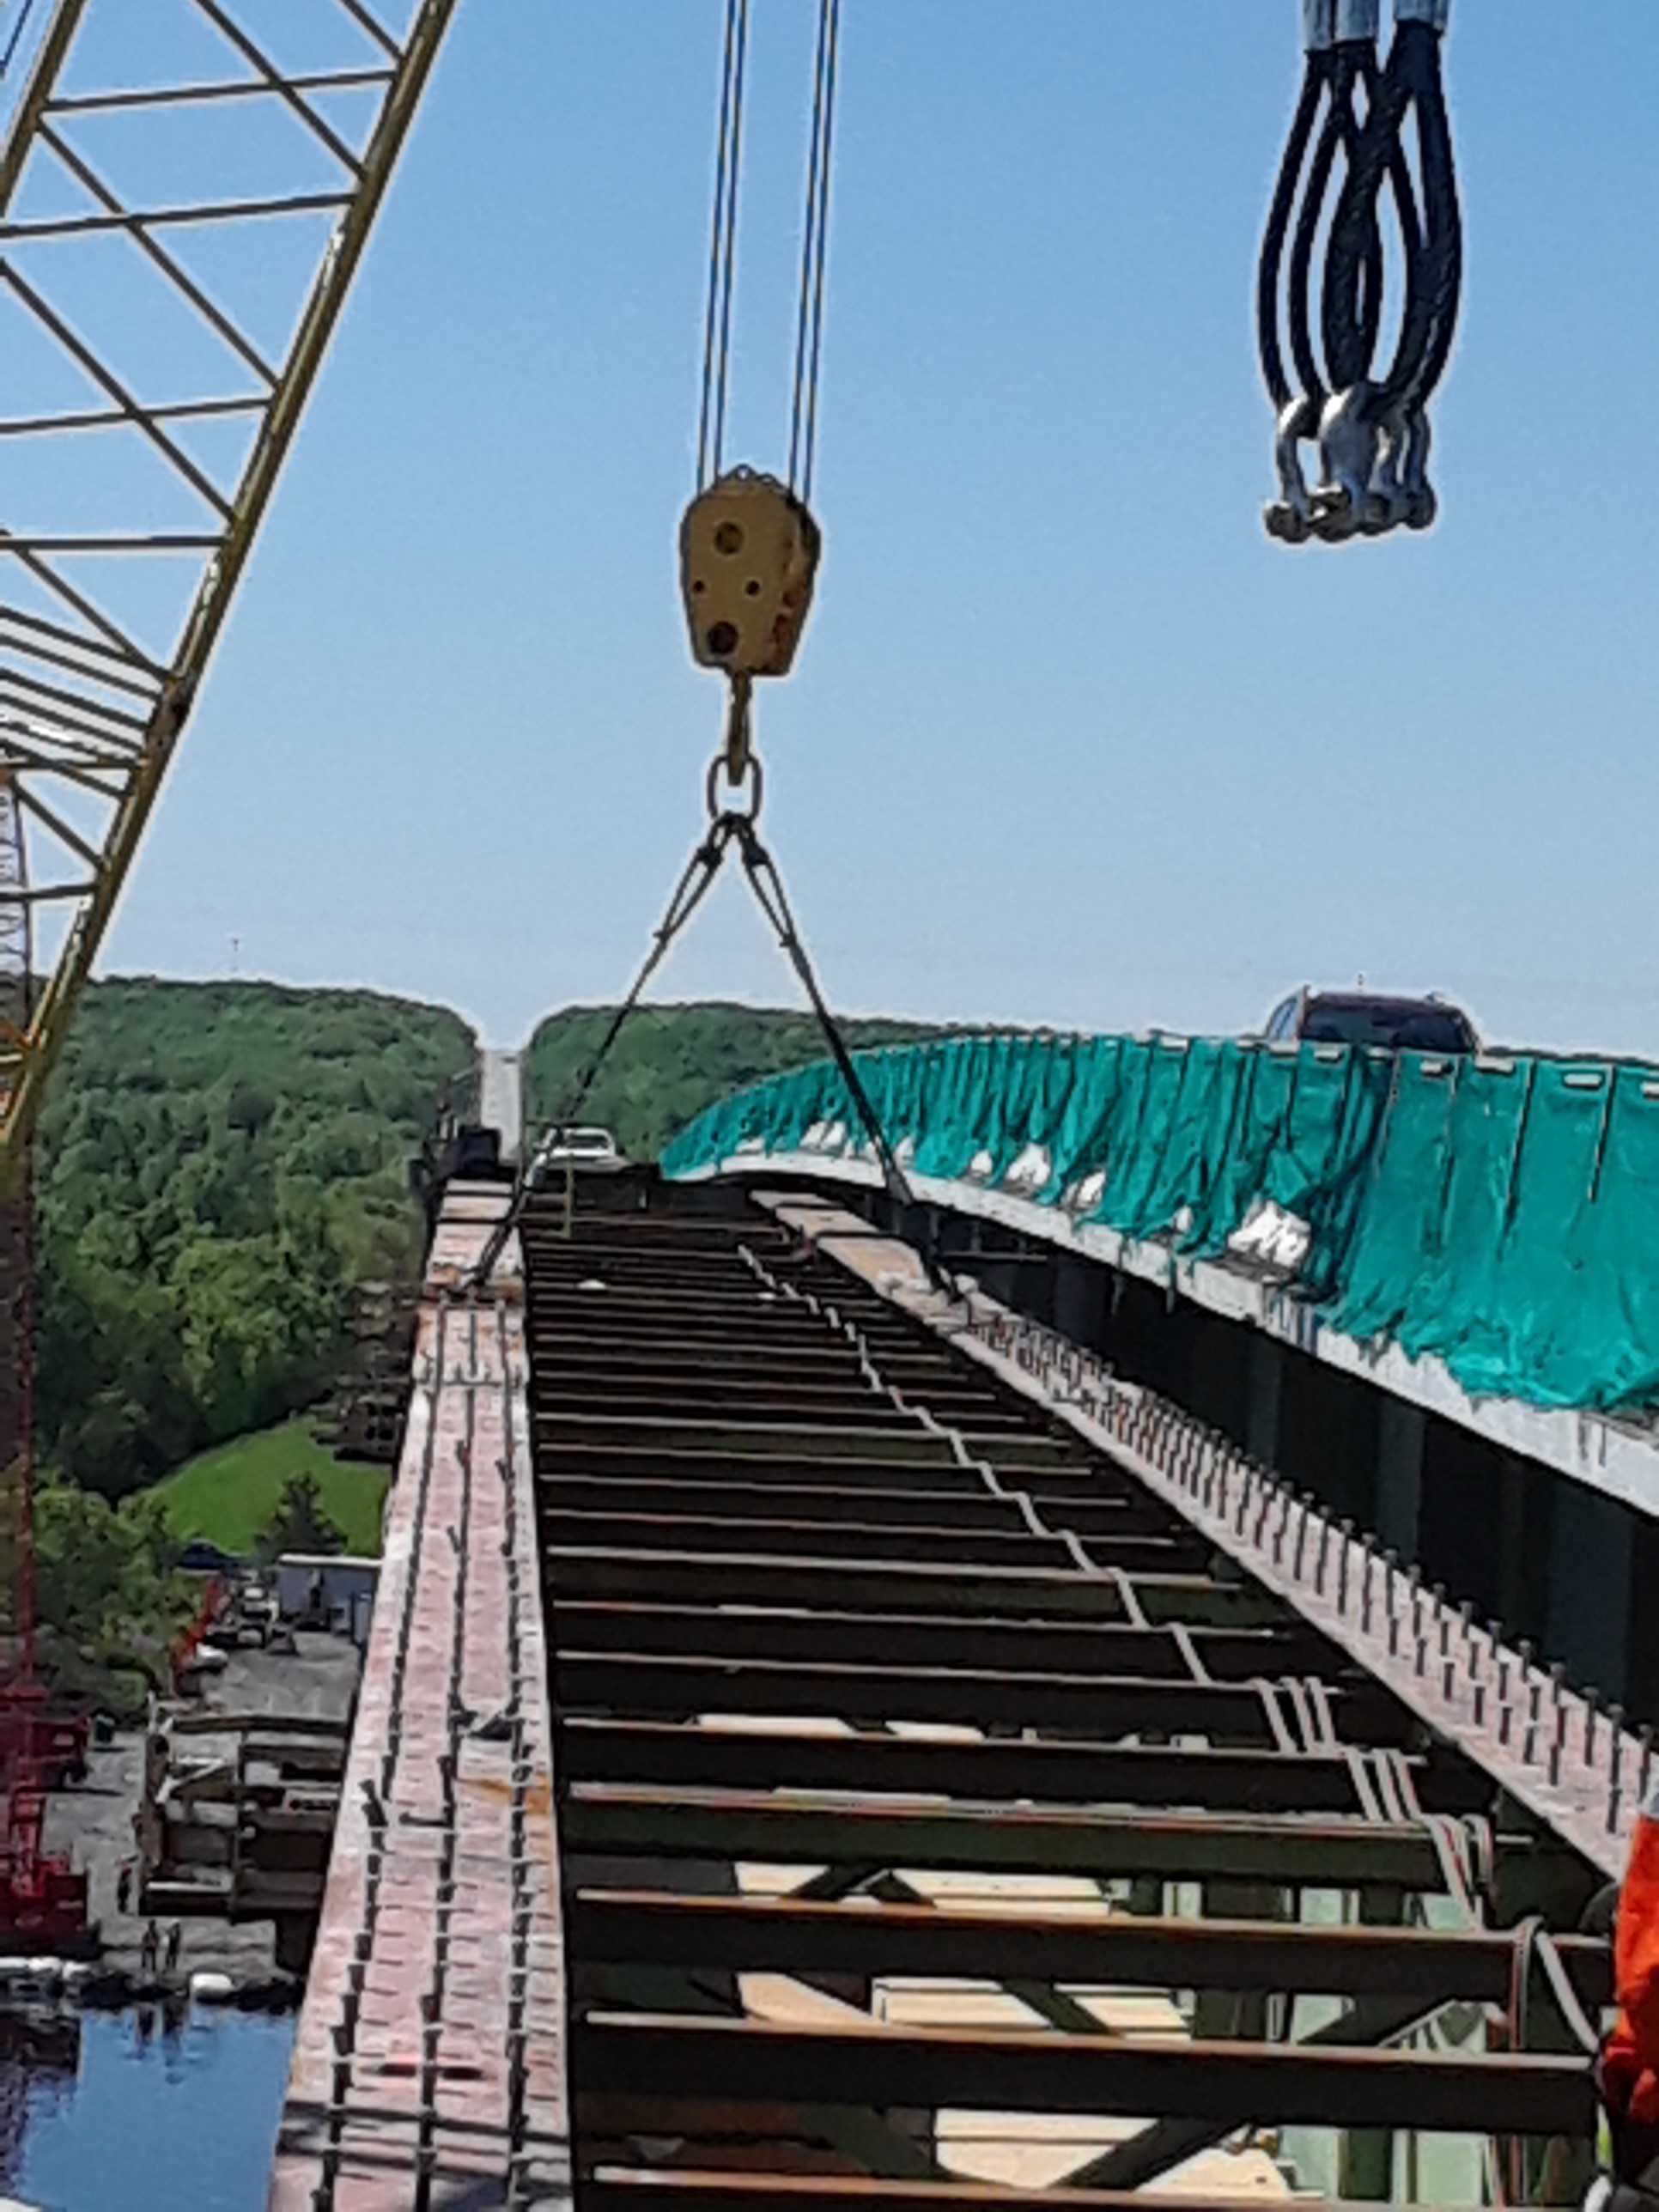 Cables connected for girder removal